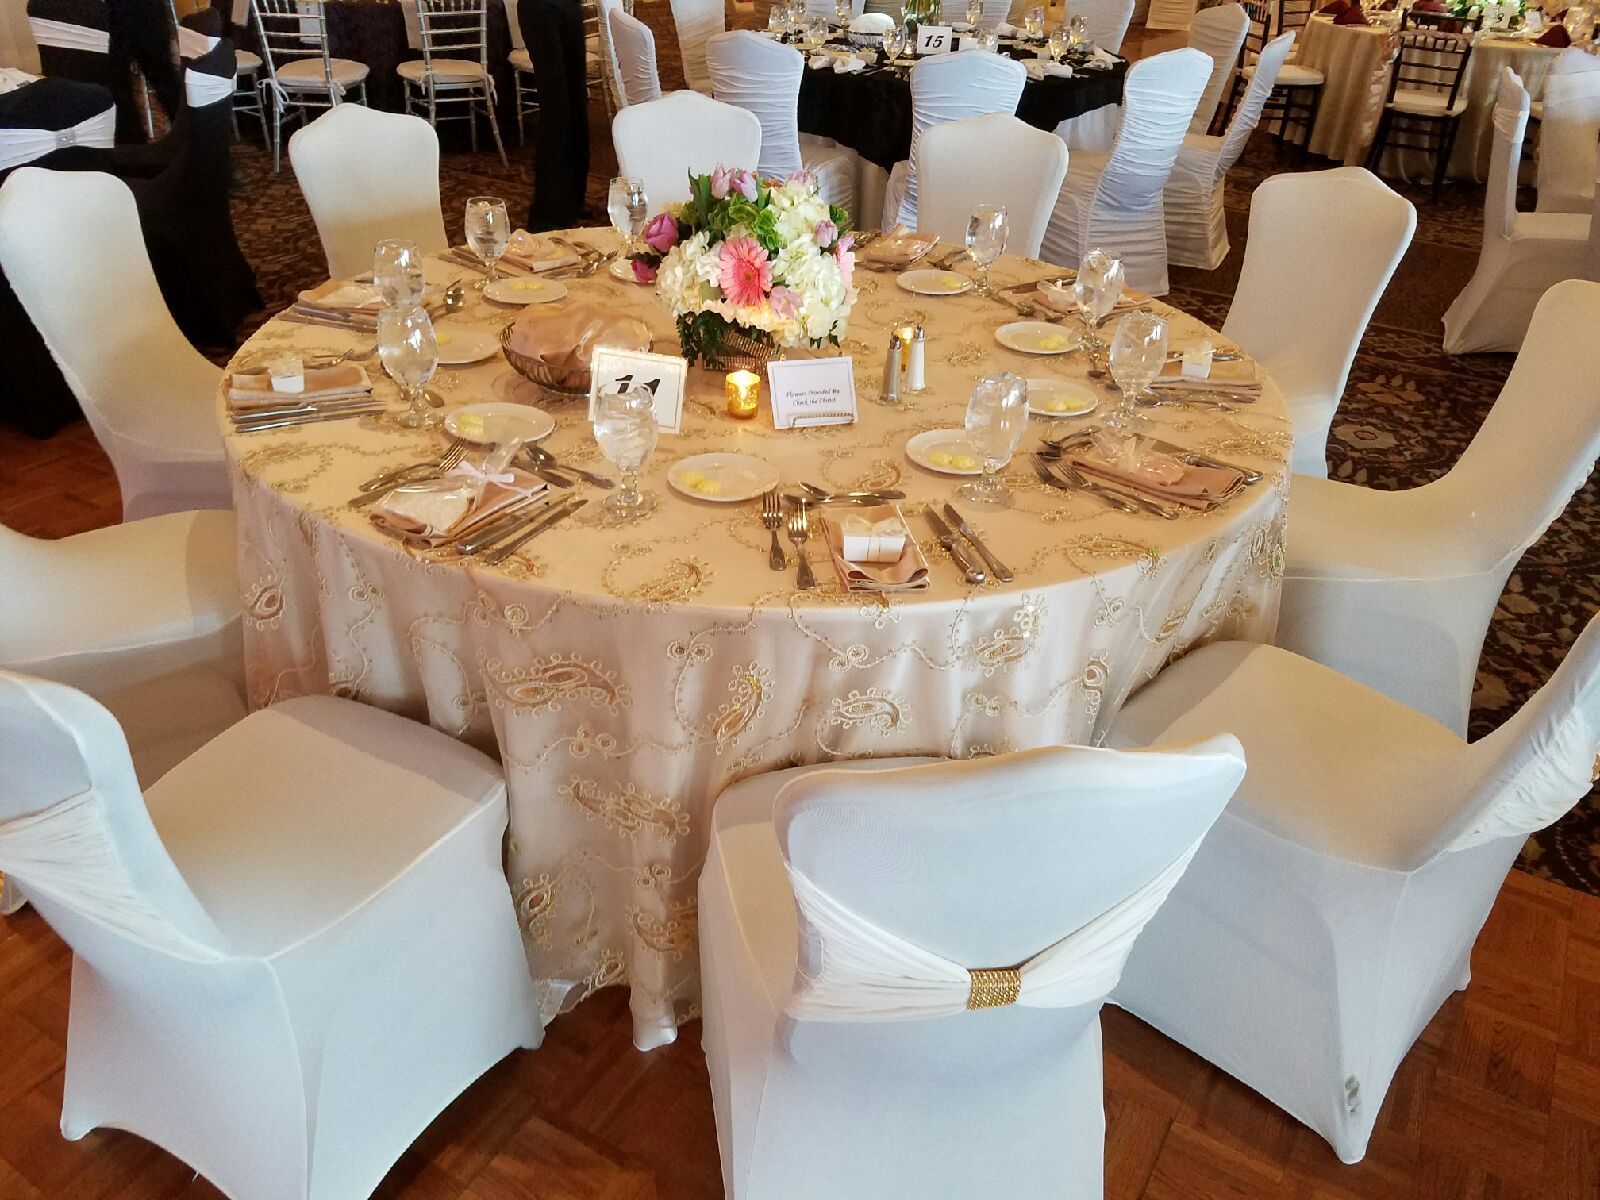 Our beautiful gold paisley overlay matched with blush napkins, and our white venetian chair cover #beautiful #paisley #wedding #xo #blush #beautiful #events #romantic #thegirls